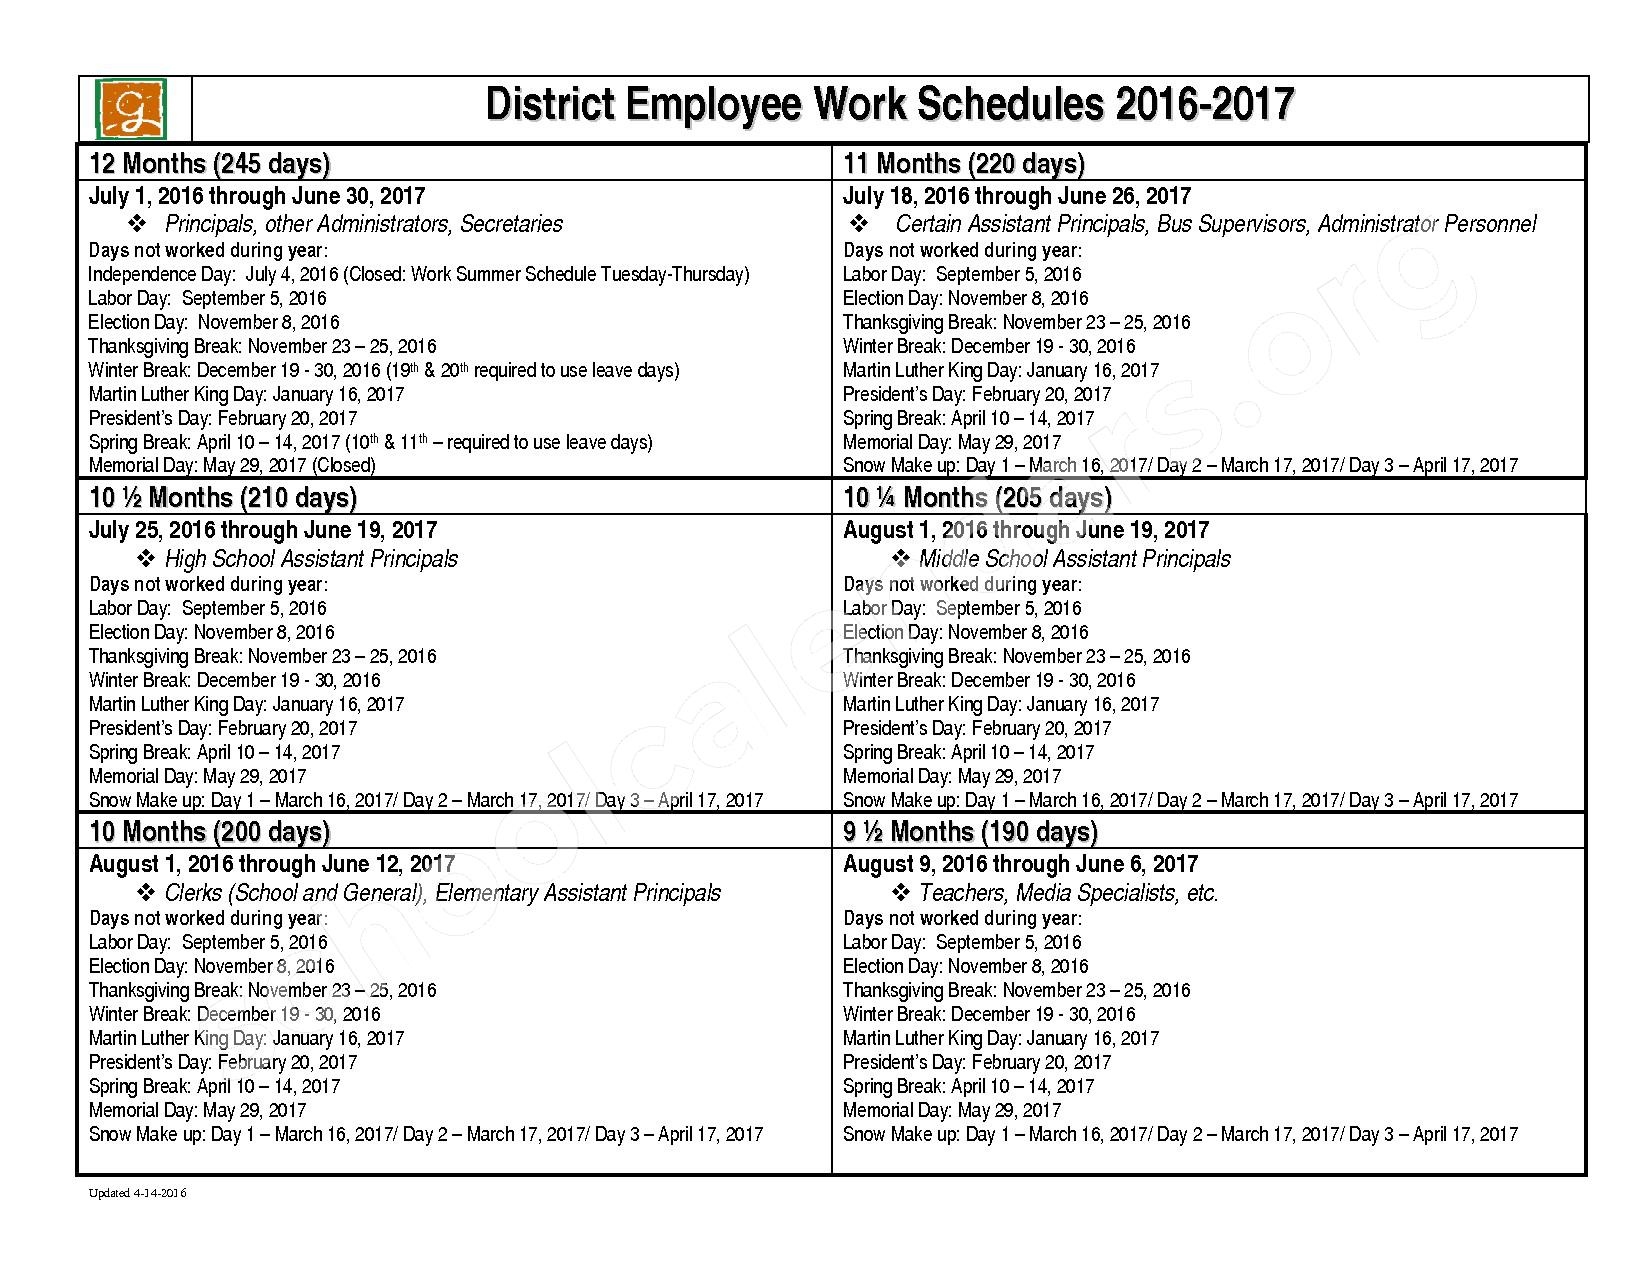 2016 - 2017 Work Schedule for District Employees – Chandler Creek Elementary School – page 1